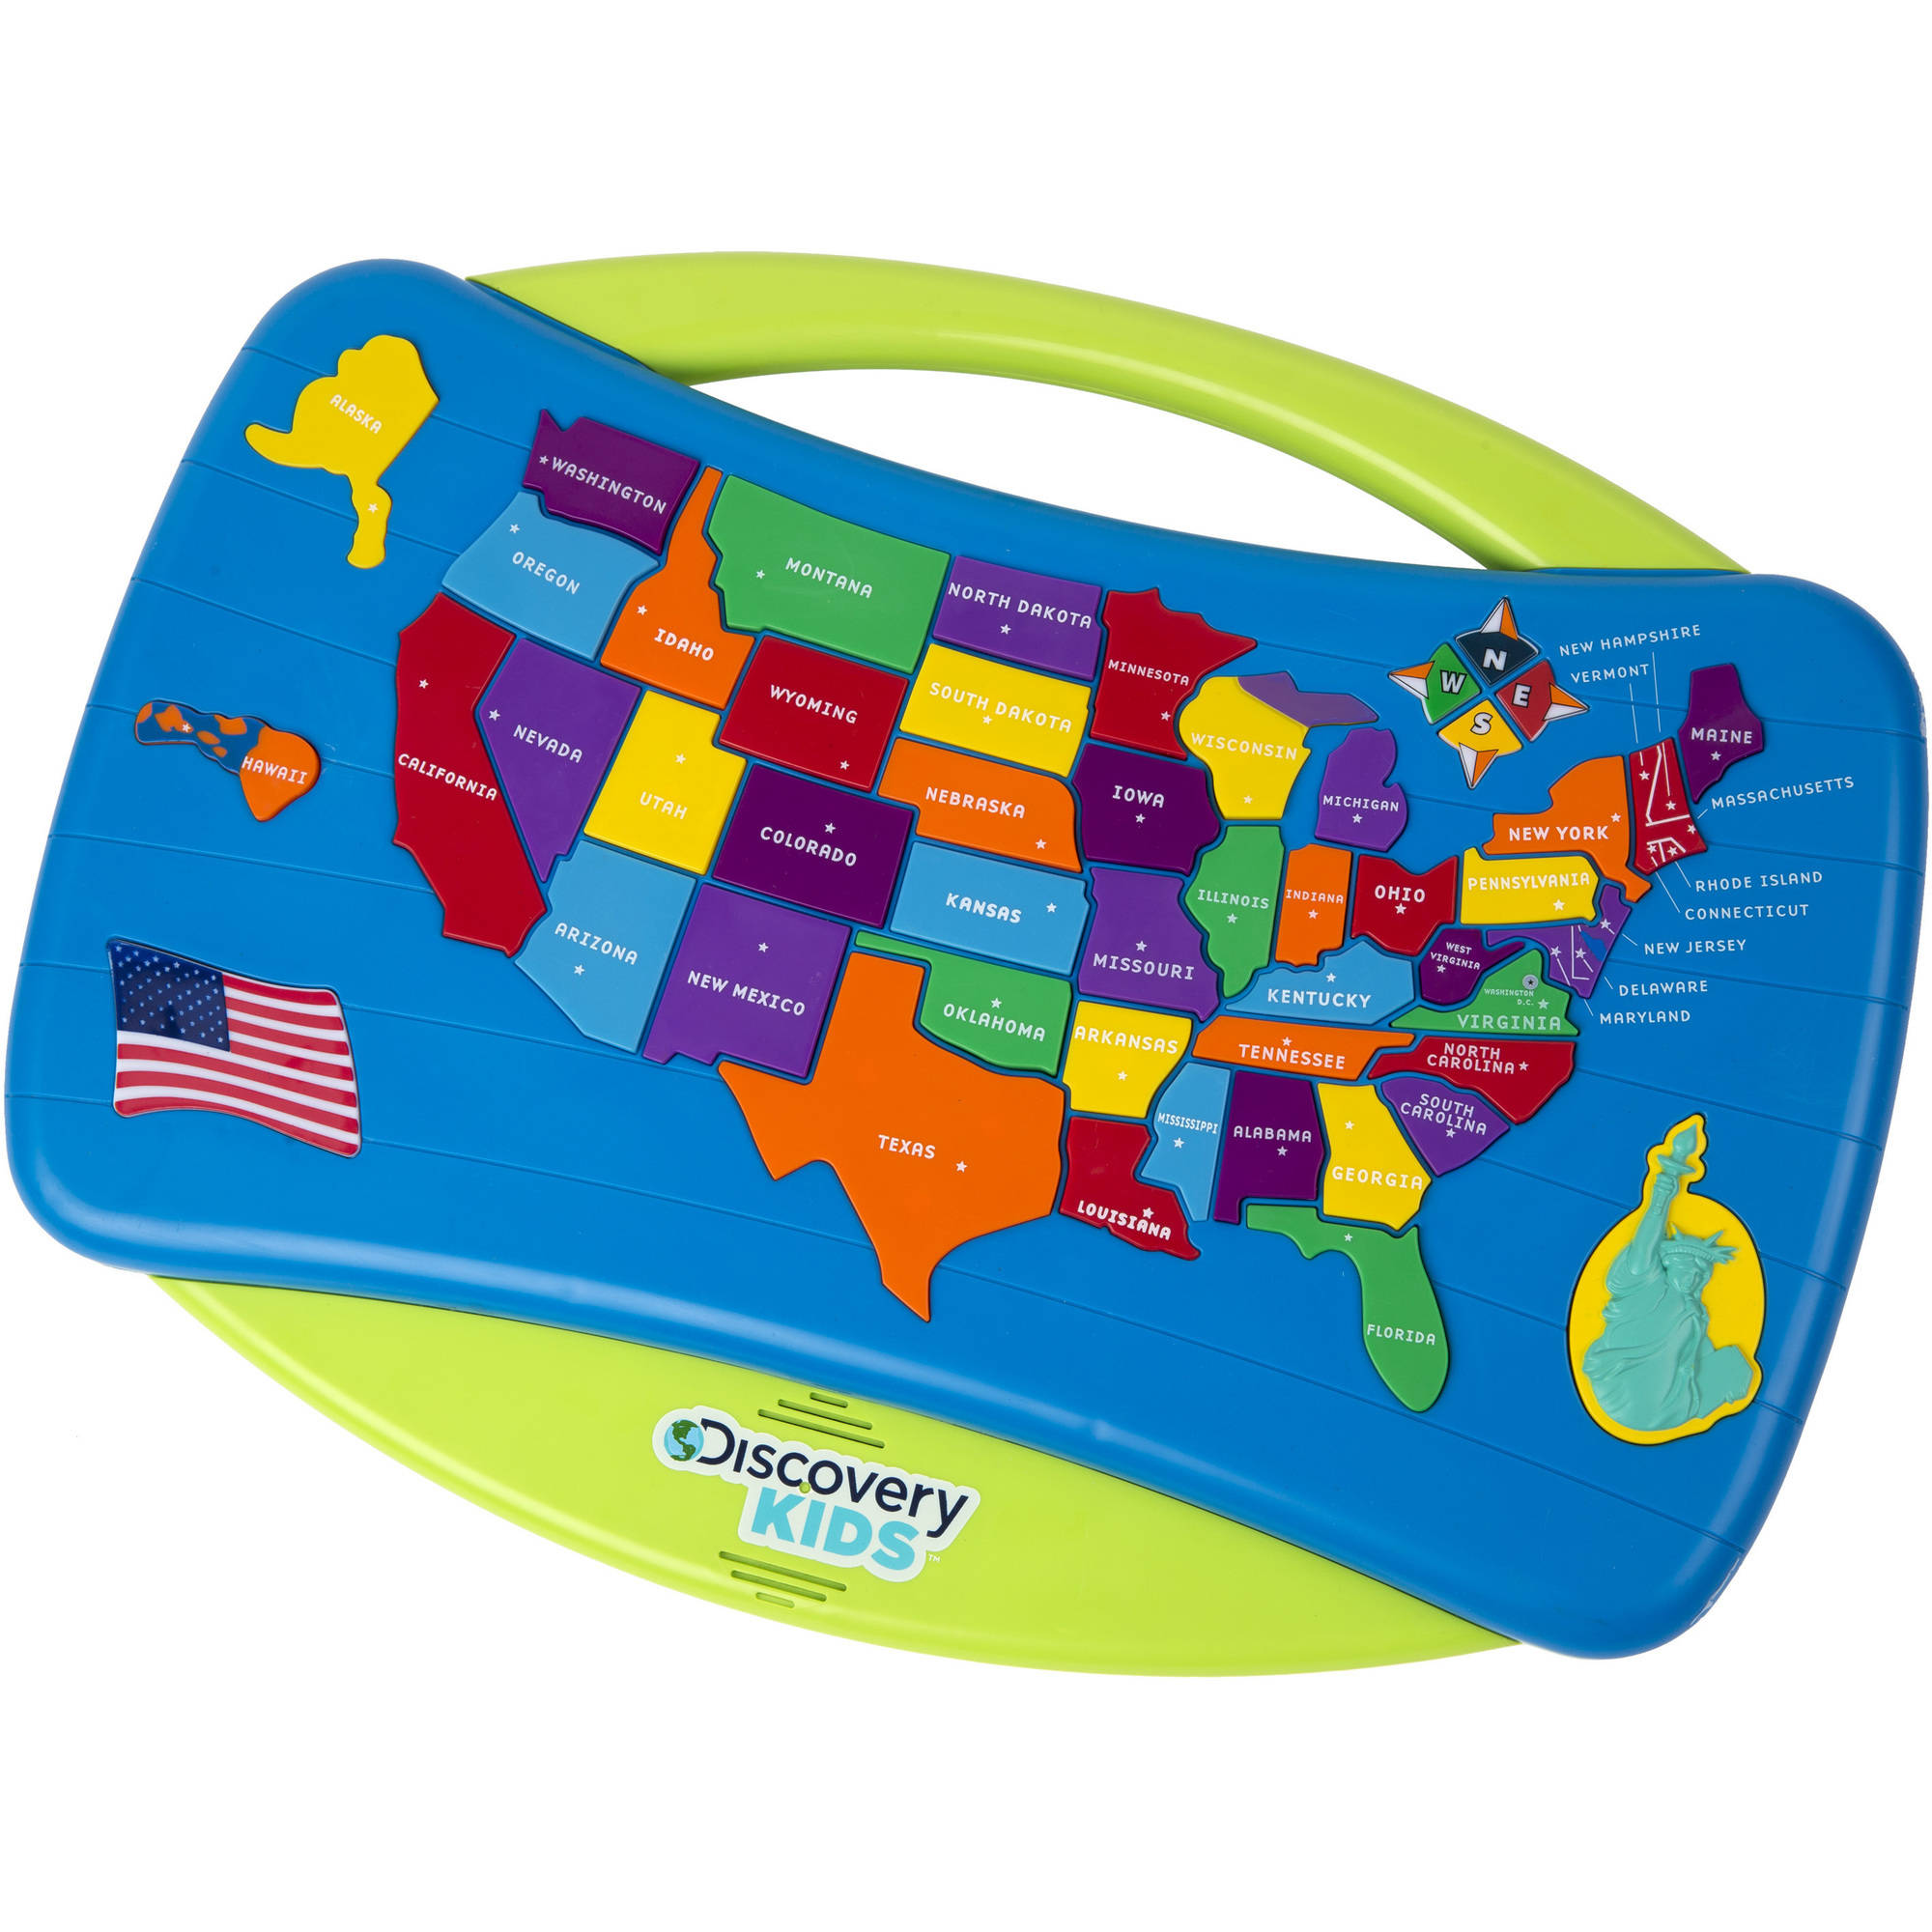 Discovery Kids Talking USA Puzzle Walmartcom - Map usa states drag and drop